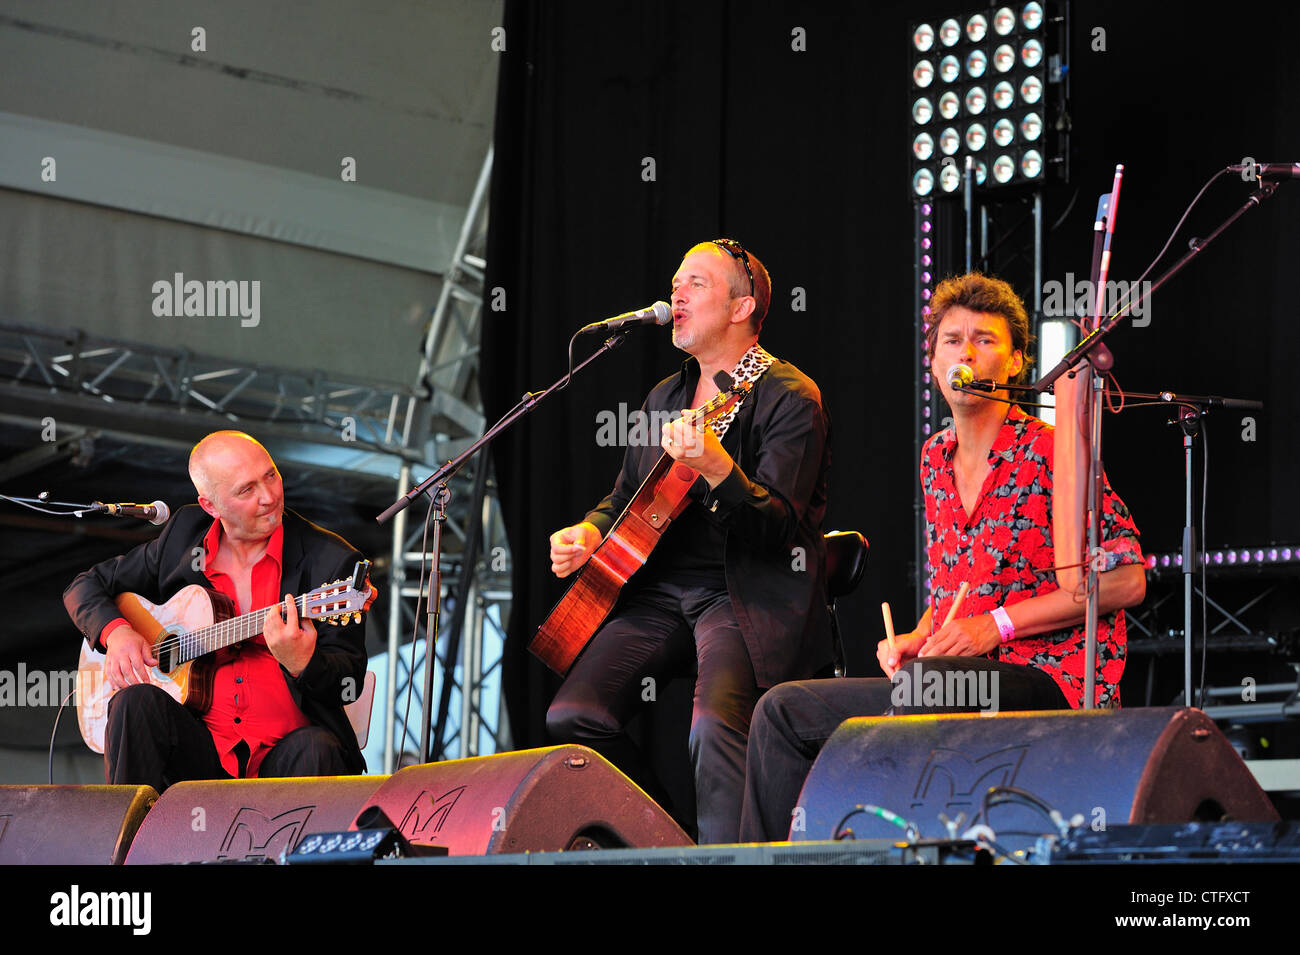 Music performance by Tio Pepe and the Bordellos at the Gentse Feesten / Ghent Festivities, Belgium - Stock Image